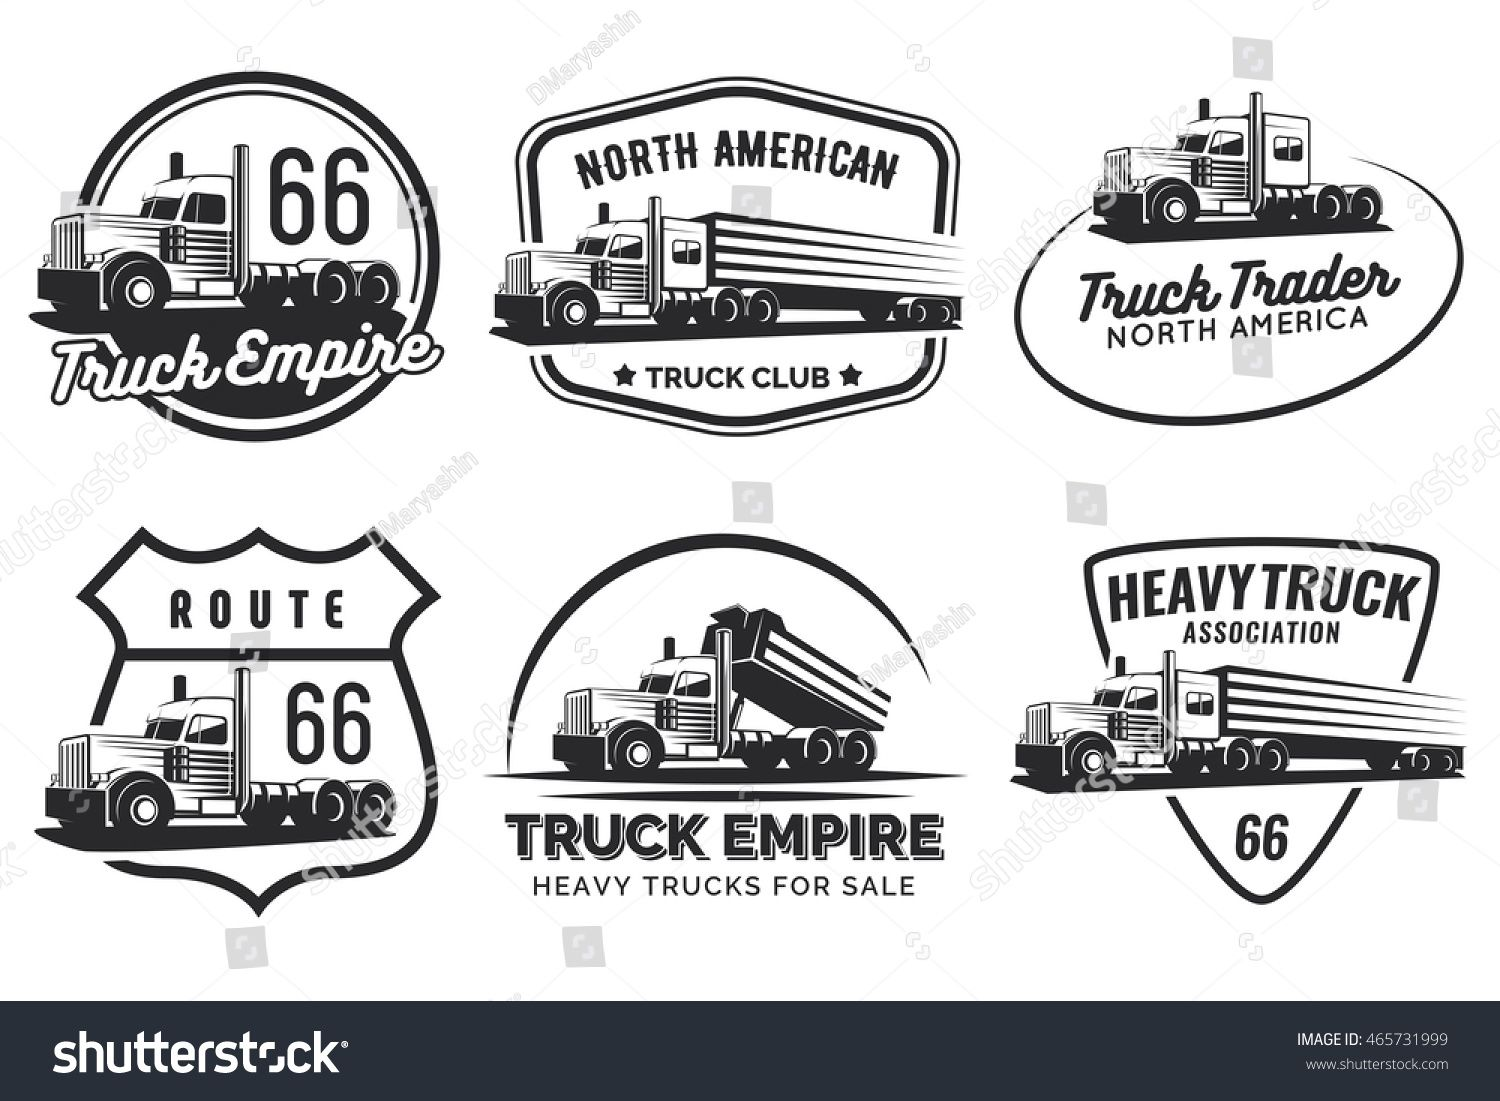 Set of classic heavy truck logo, emblems and badges. Truck